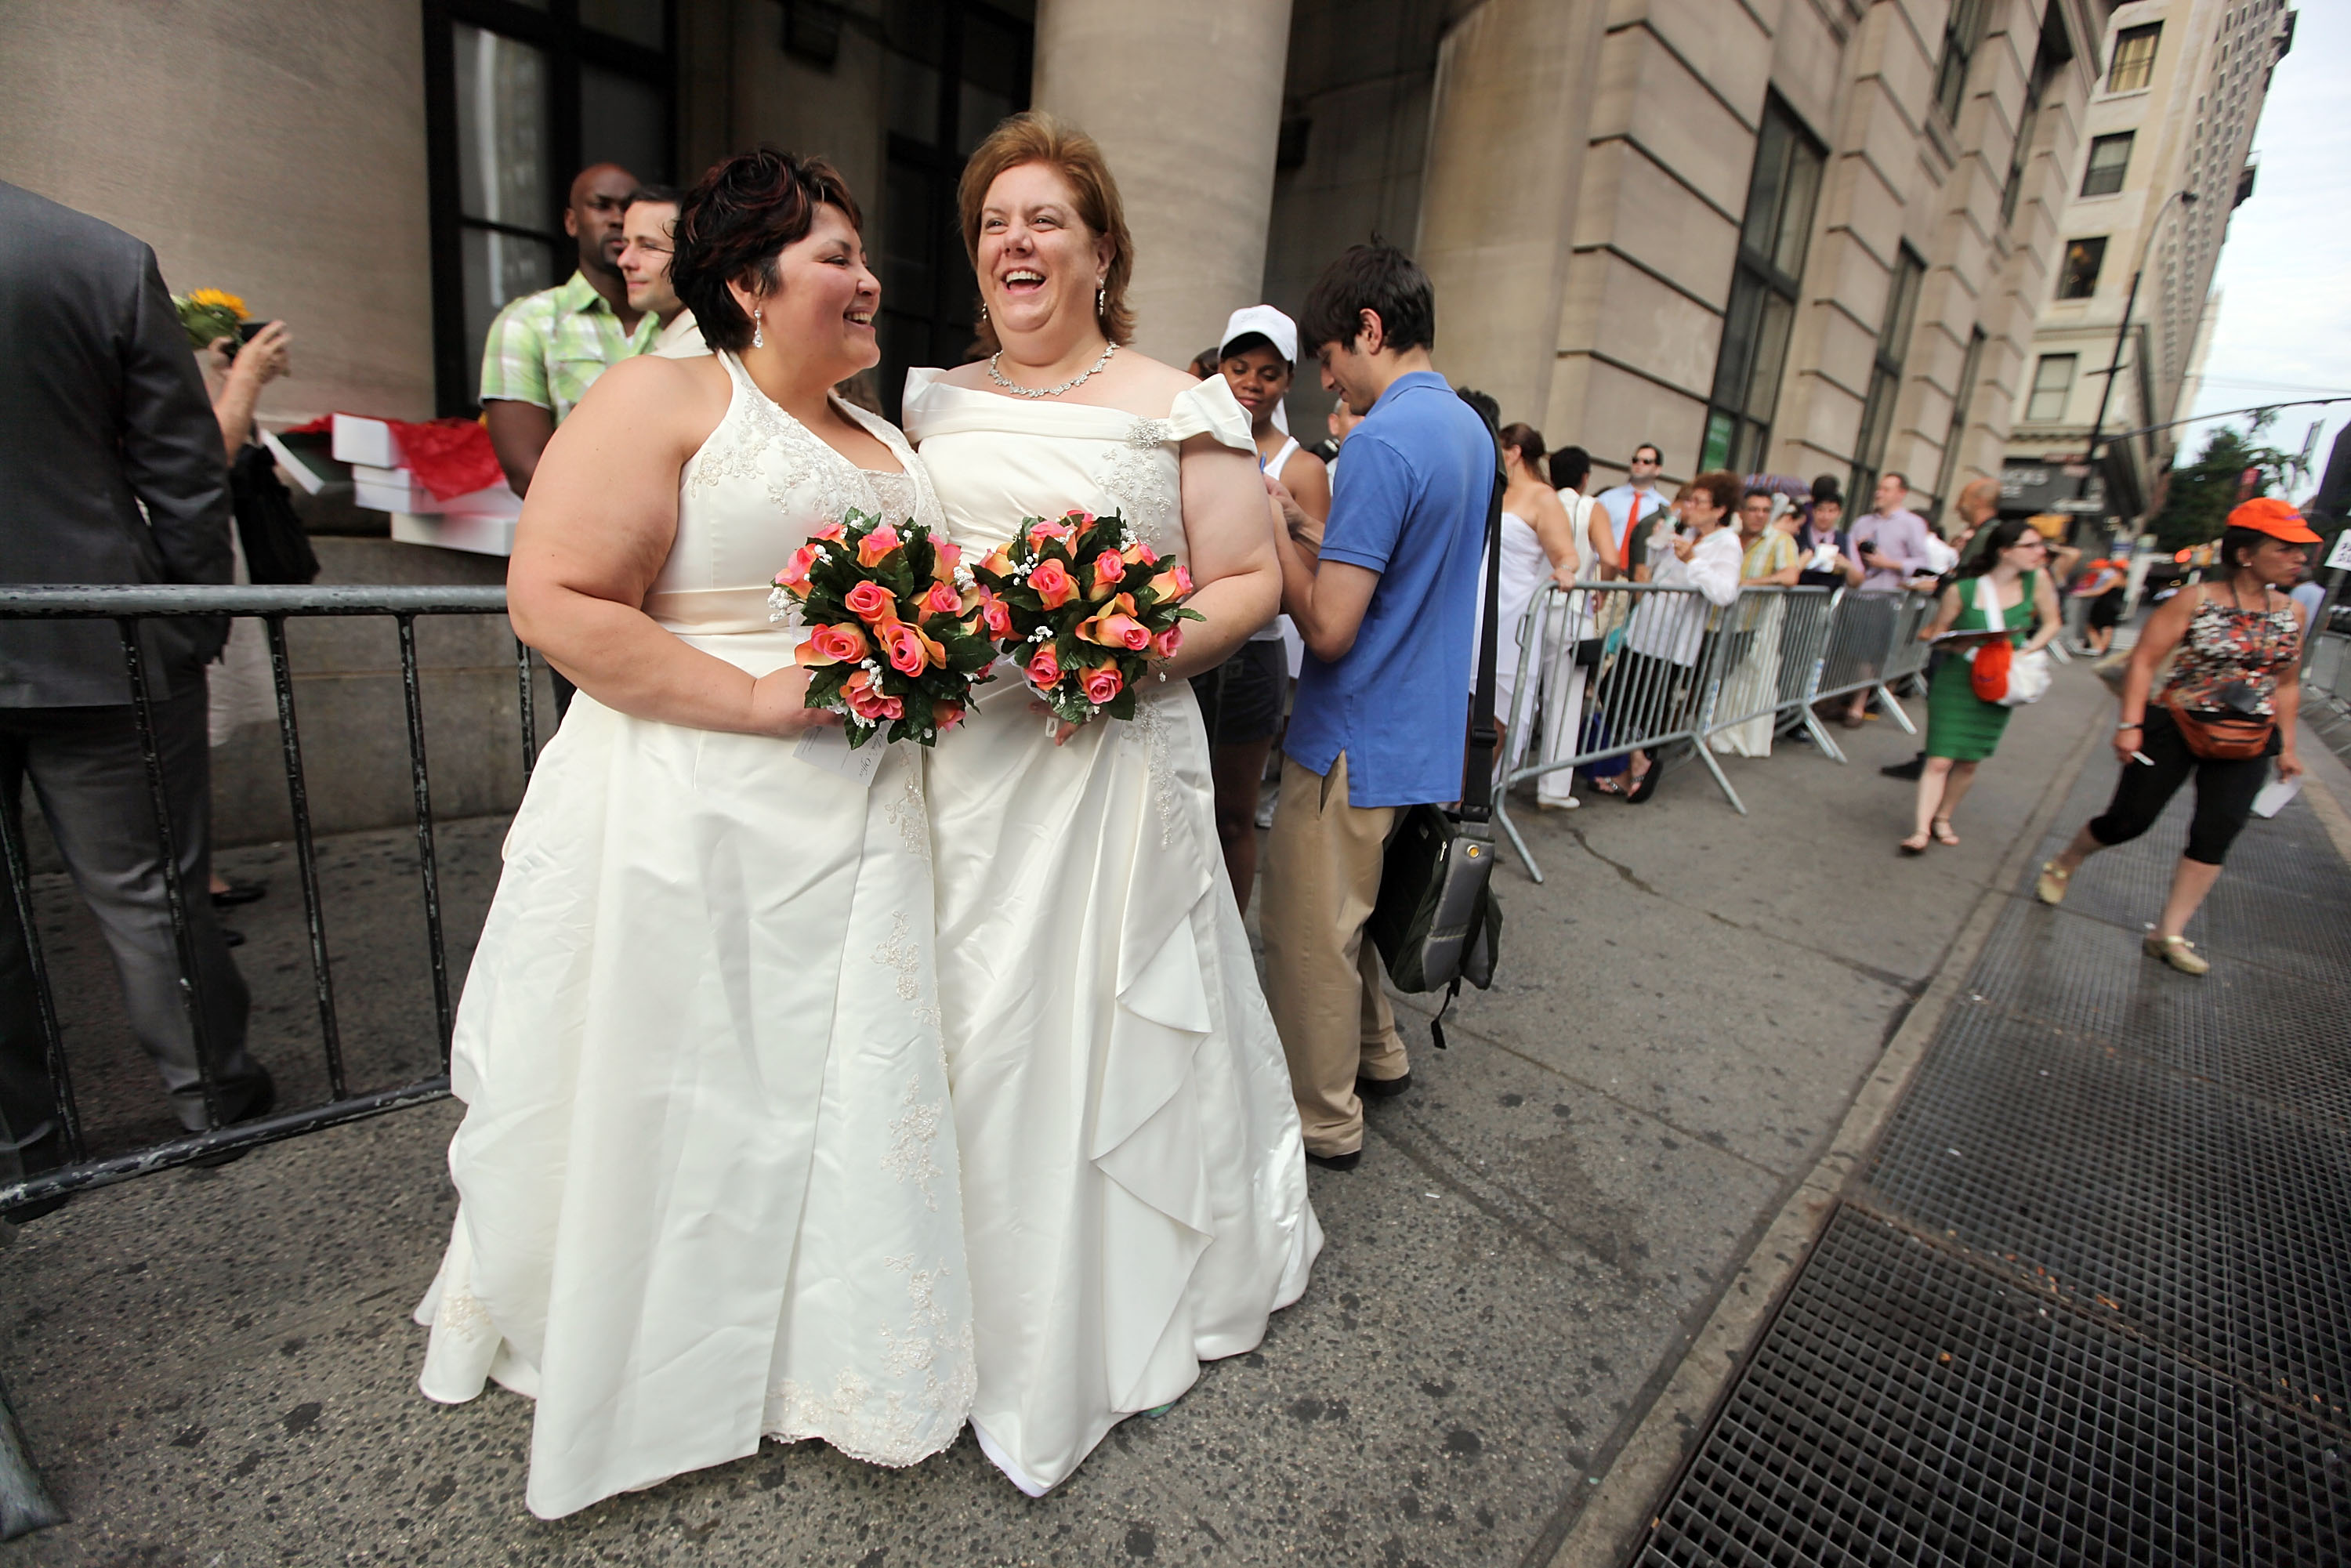 Germany celebrates first gay marriage after 27 years of struggle for equality